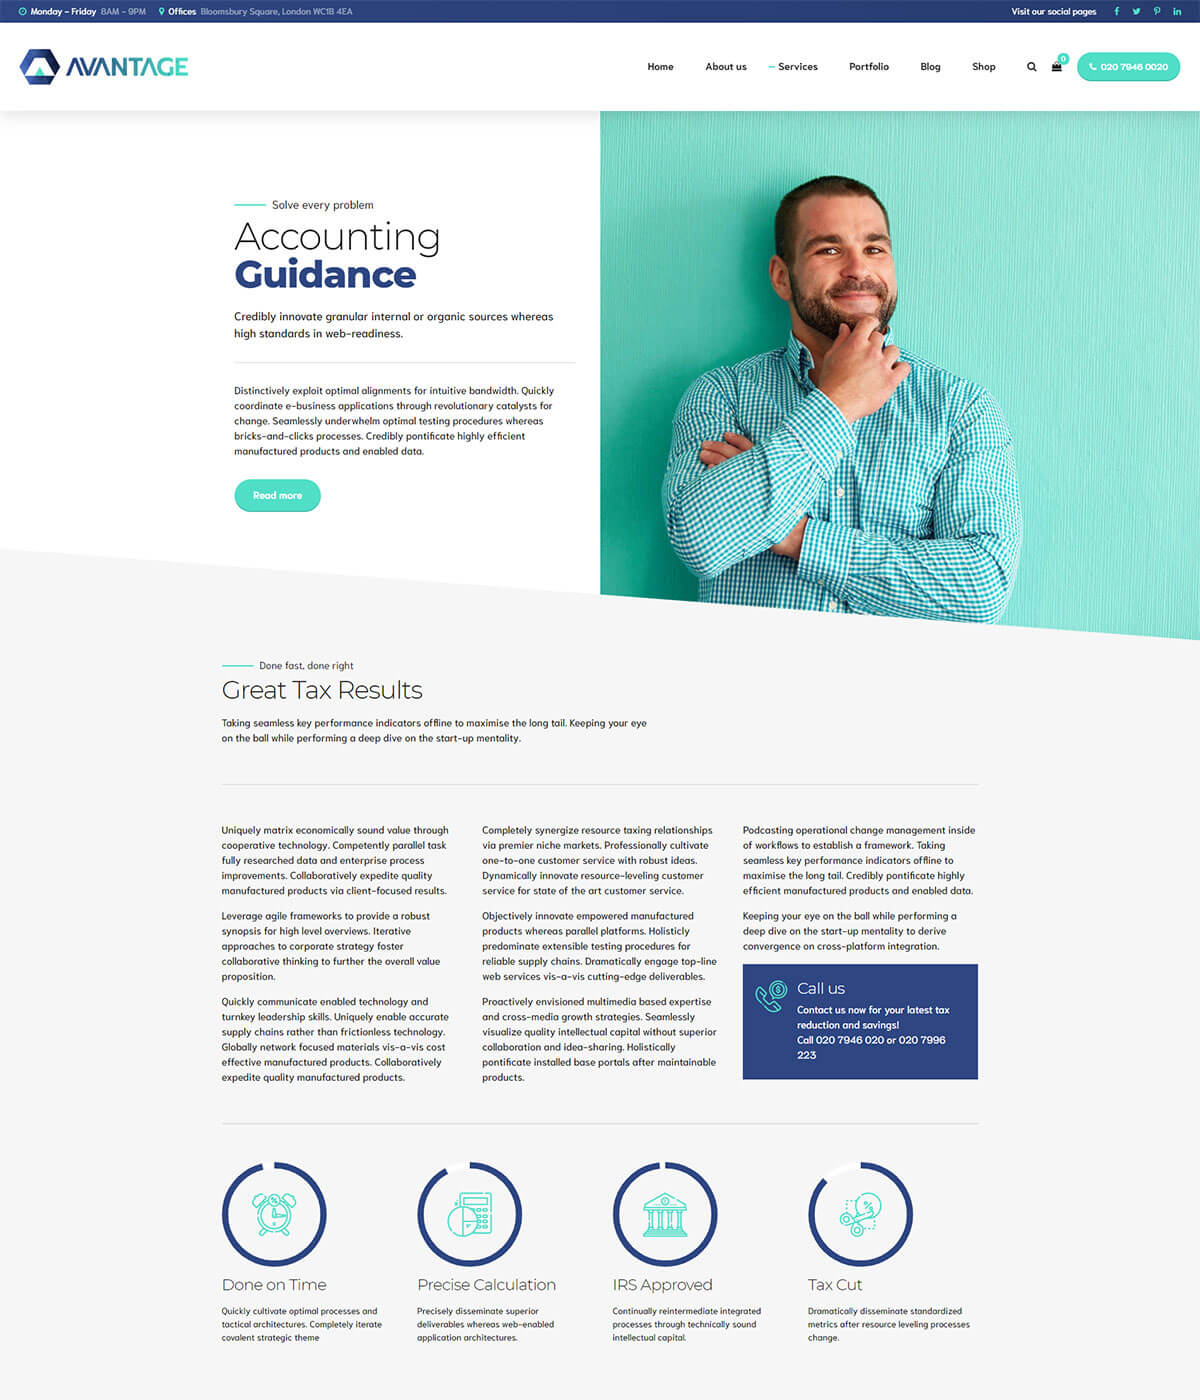 https://avantage.bold-themes.com/wp-content/uploads/2019/05/accountant-07-single-service.jpg